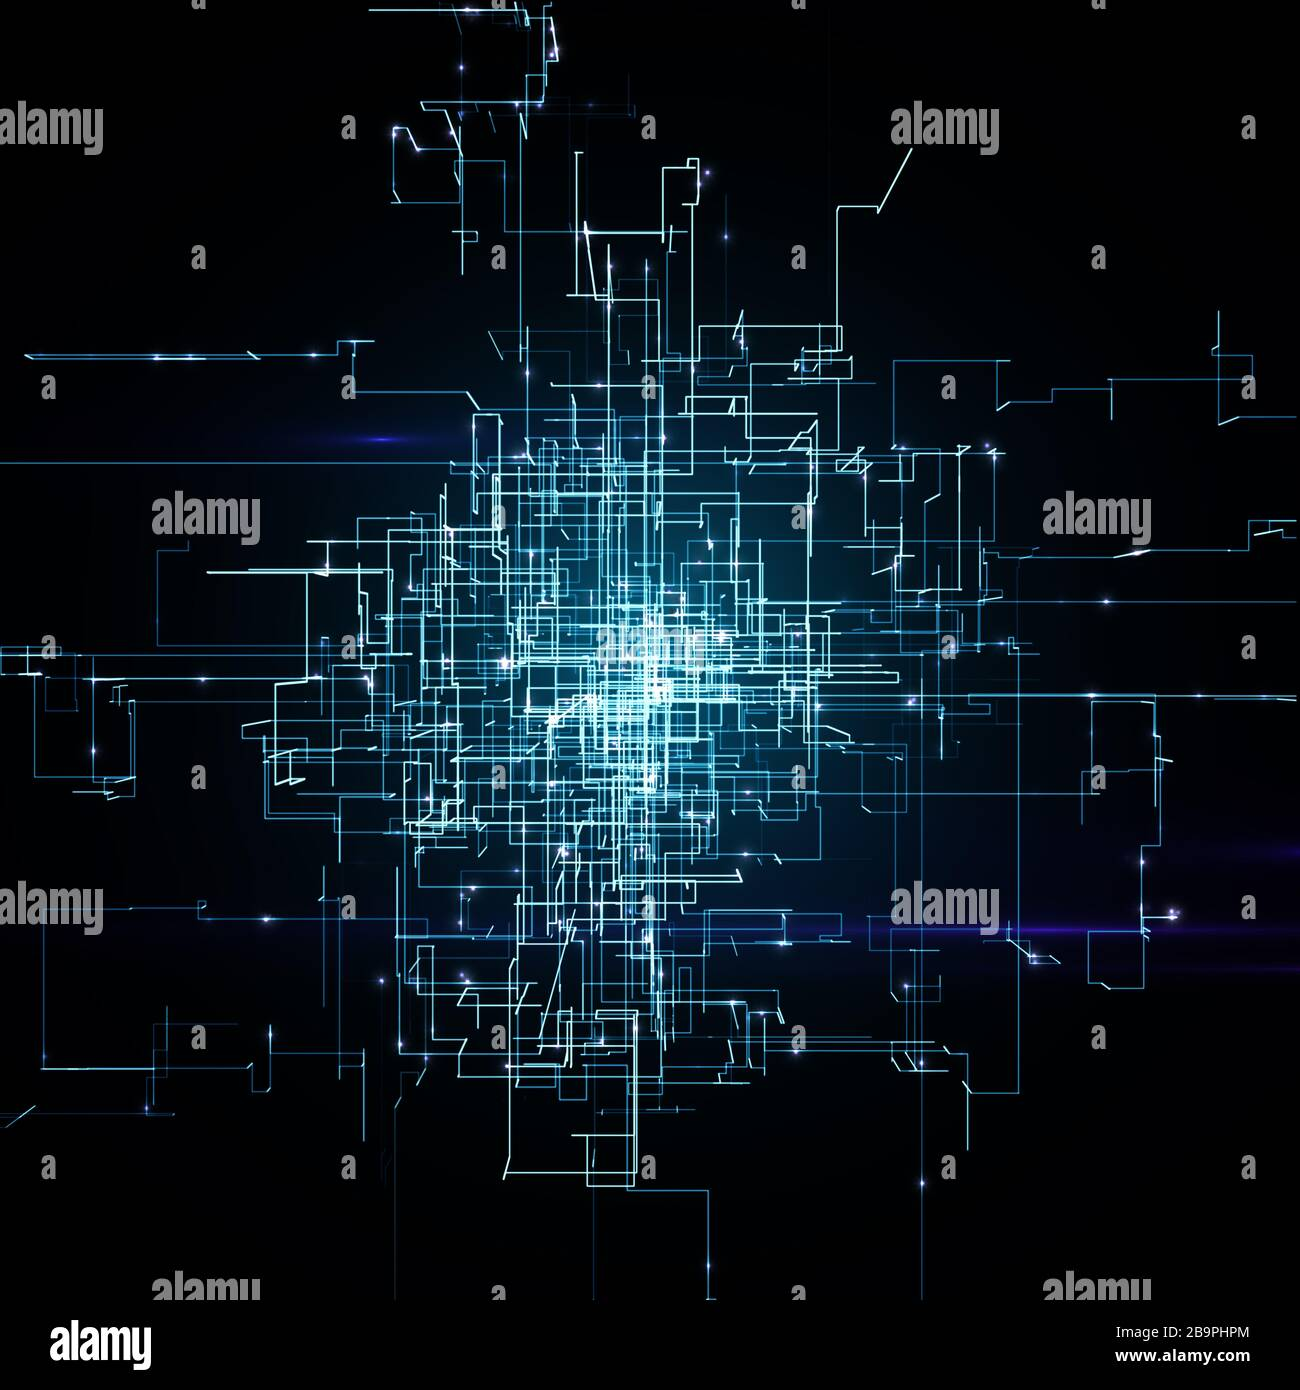 Digital Connectivity, Artificial Intelligence And Data Storage Concept. Glowing Electronic Circuit Board, Conductors And Neural Signals Stock Photo